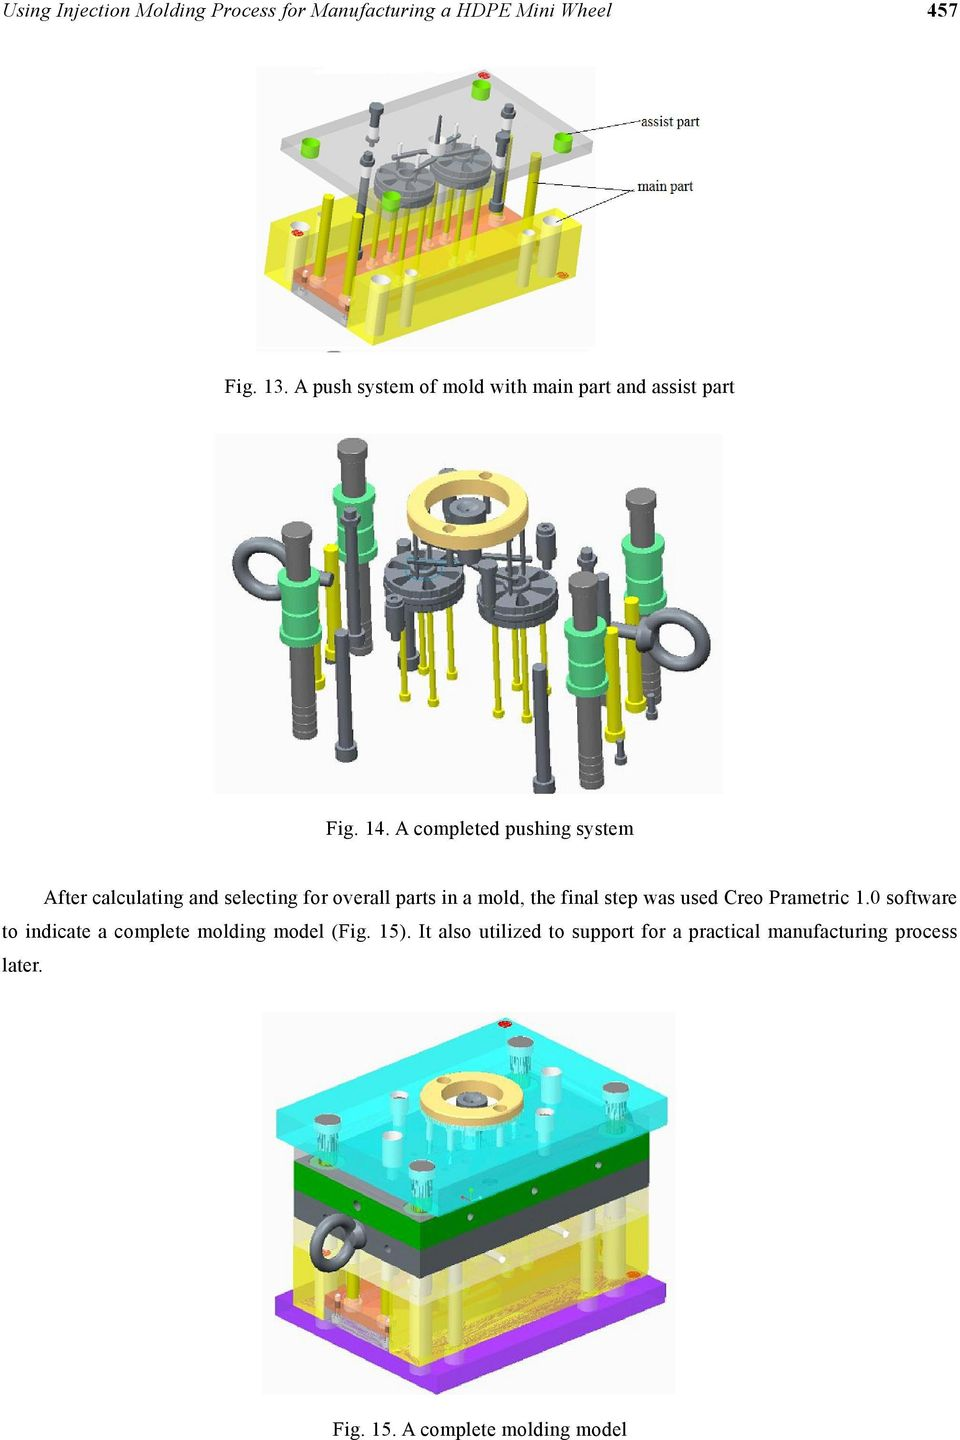 Using Injection Molding Process for Manufacturing a HDPE Mini Wheel